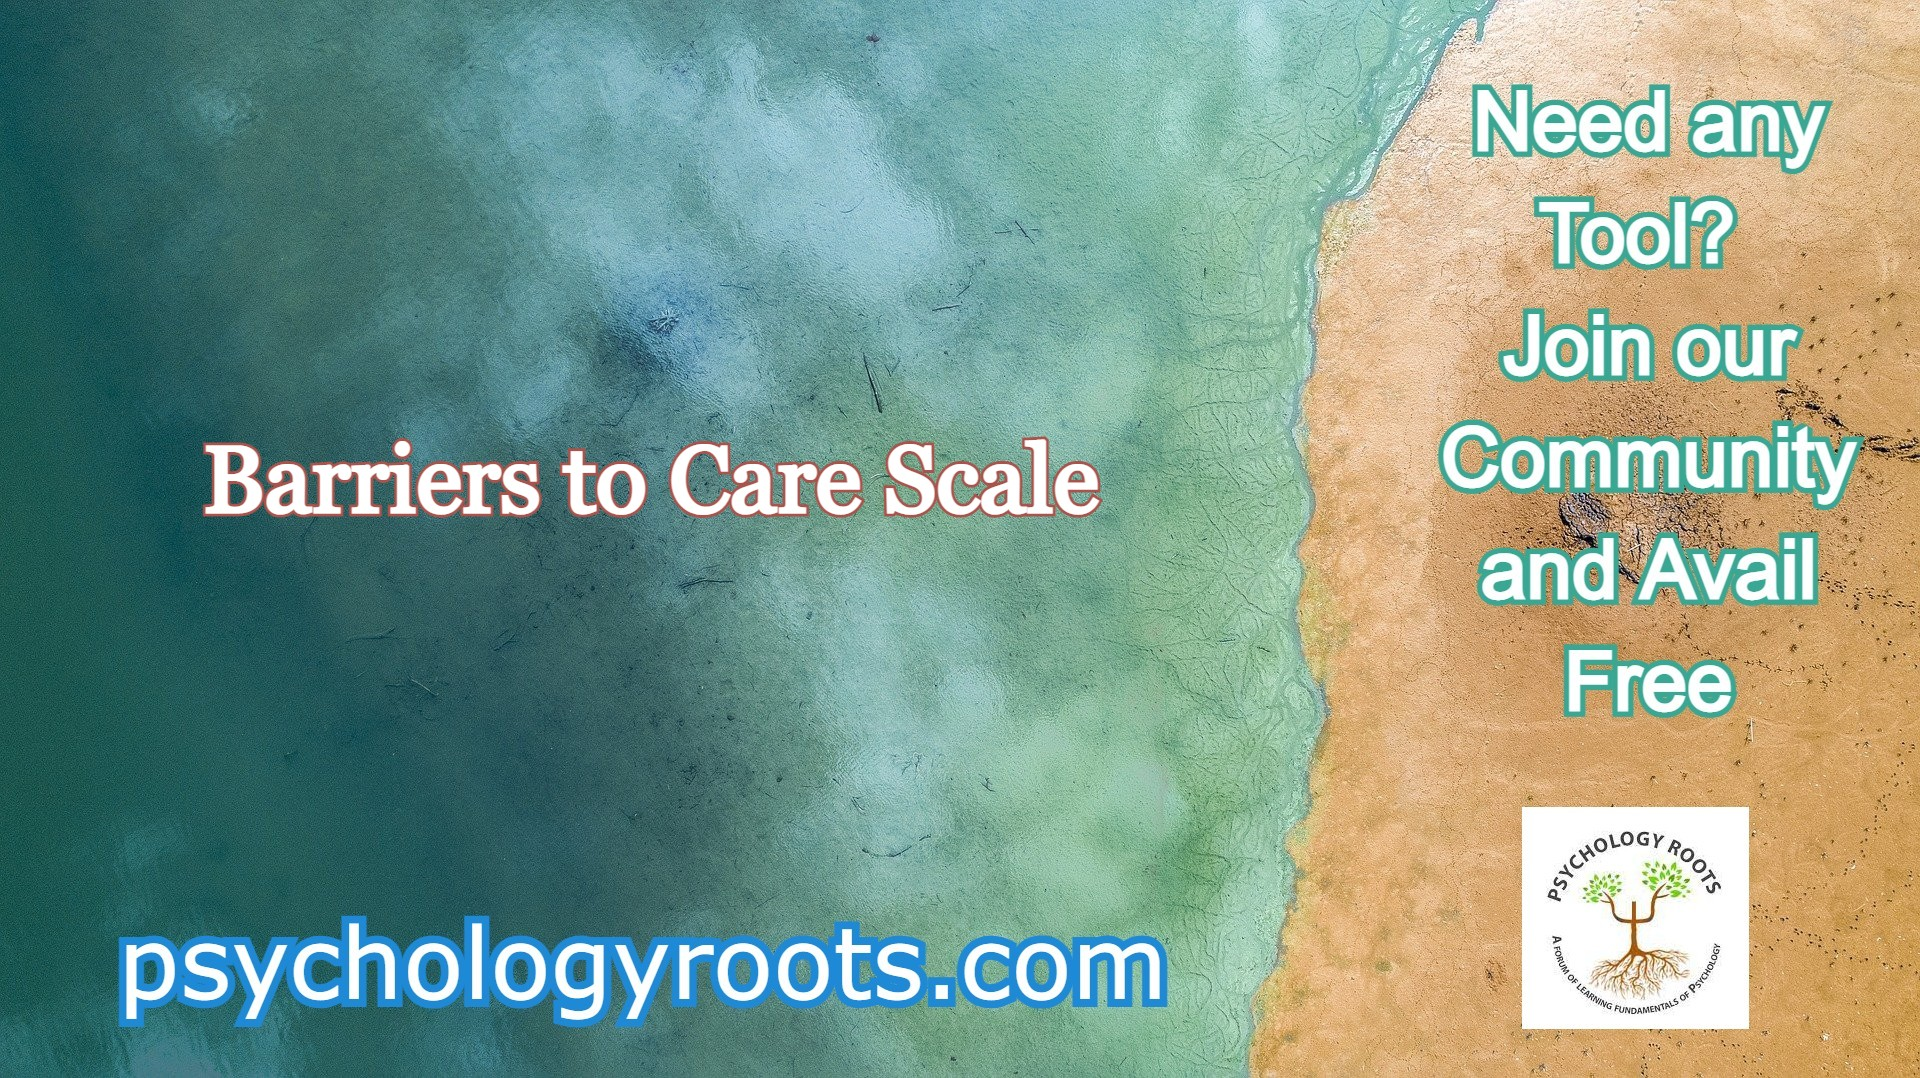 Barriers to Care Scale